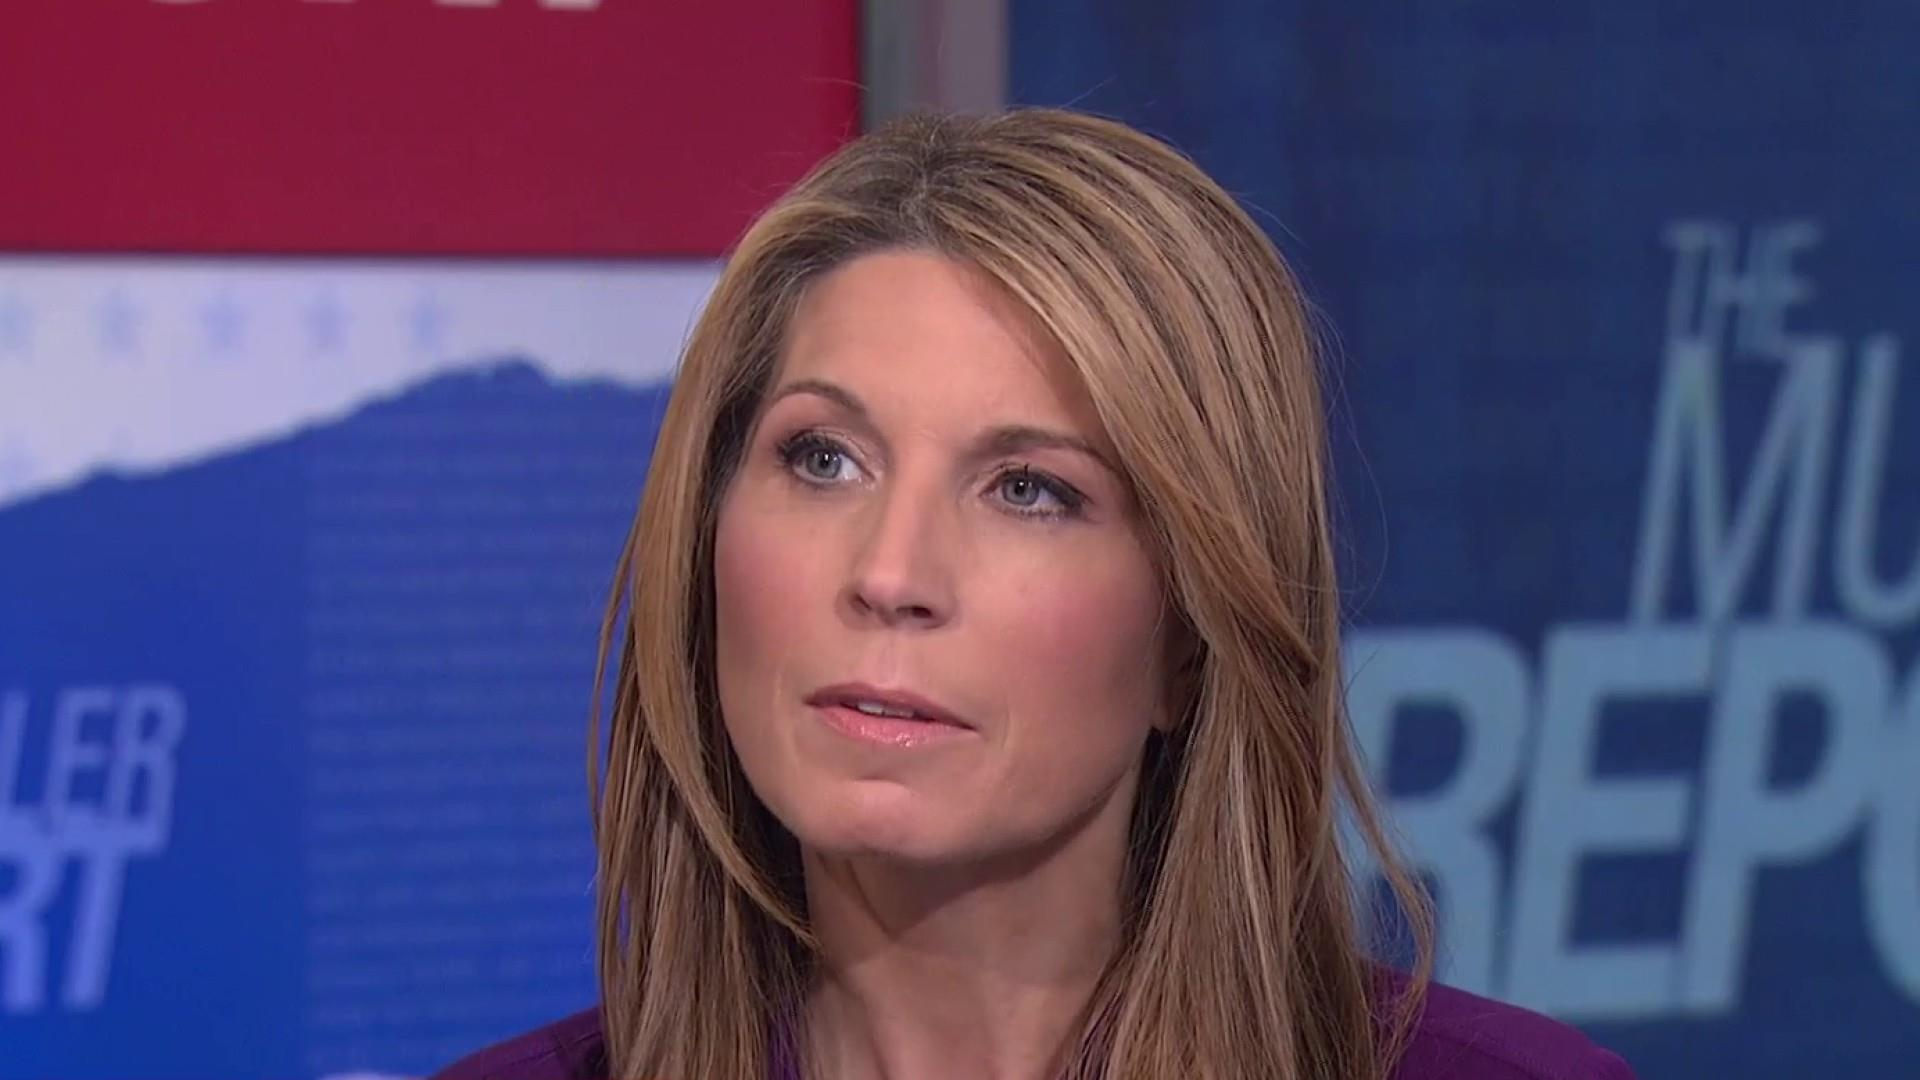 Nicolle Wallace: Why have we heard from Barr 5 times if the Mueller report is good for Trump?